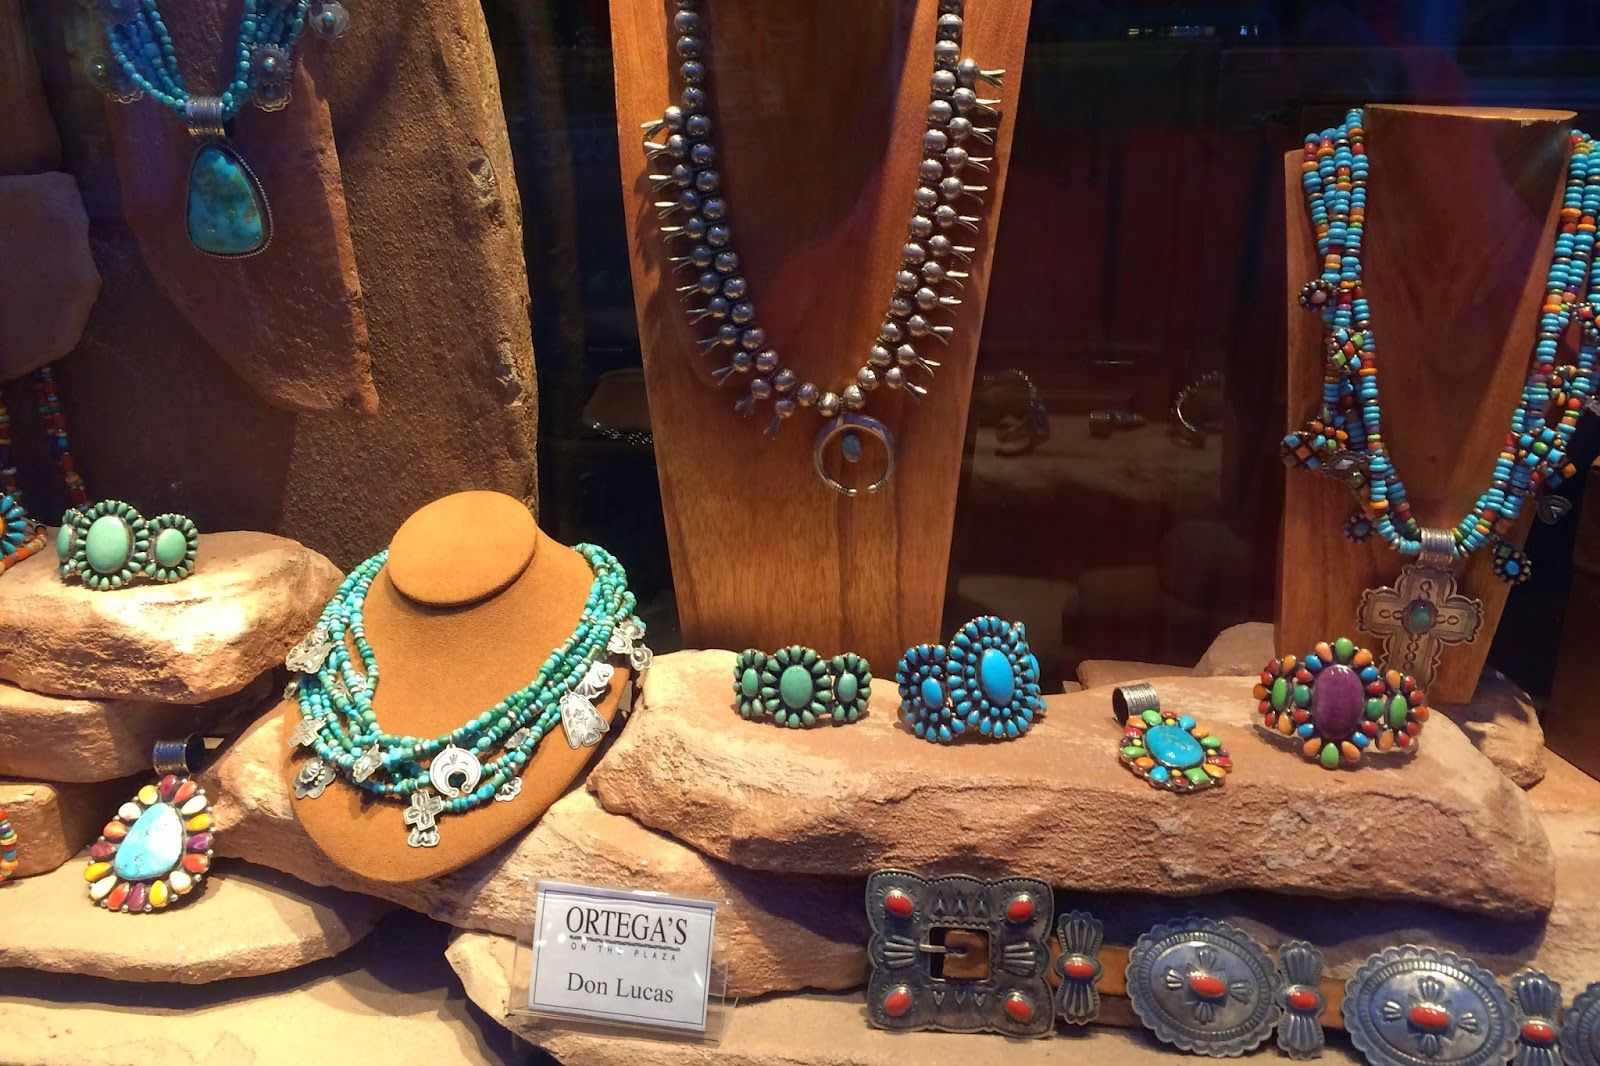 Wonderful turquoise jewelry at Ortegas in Santa Fe. Particularly love the multi color bracelet to the right;       SewWest: Fiberly Train to Santa Fe, Morning Walks